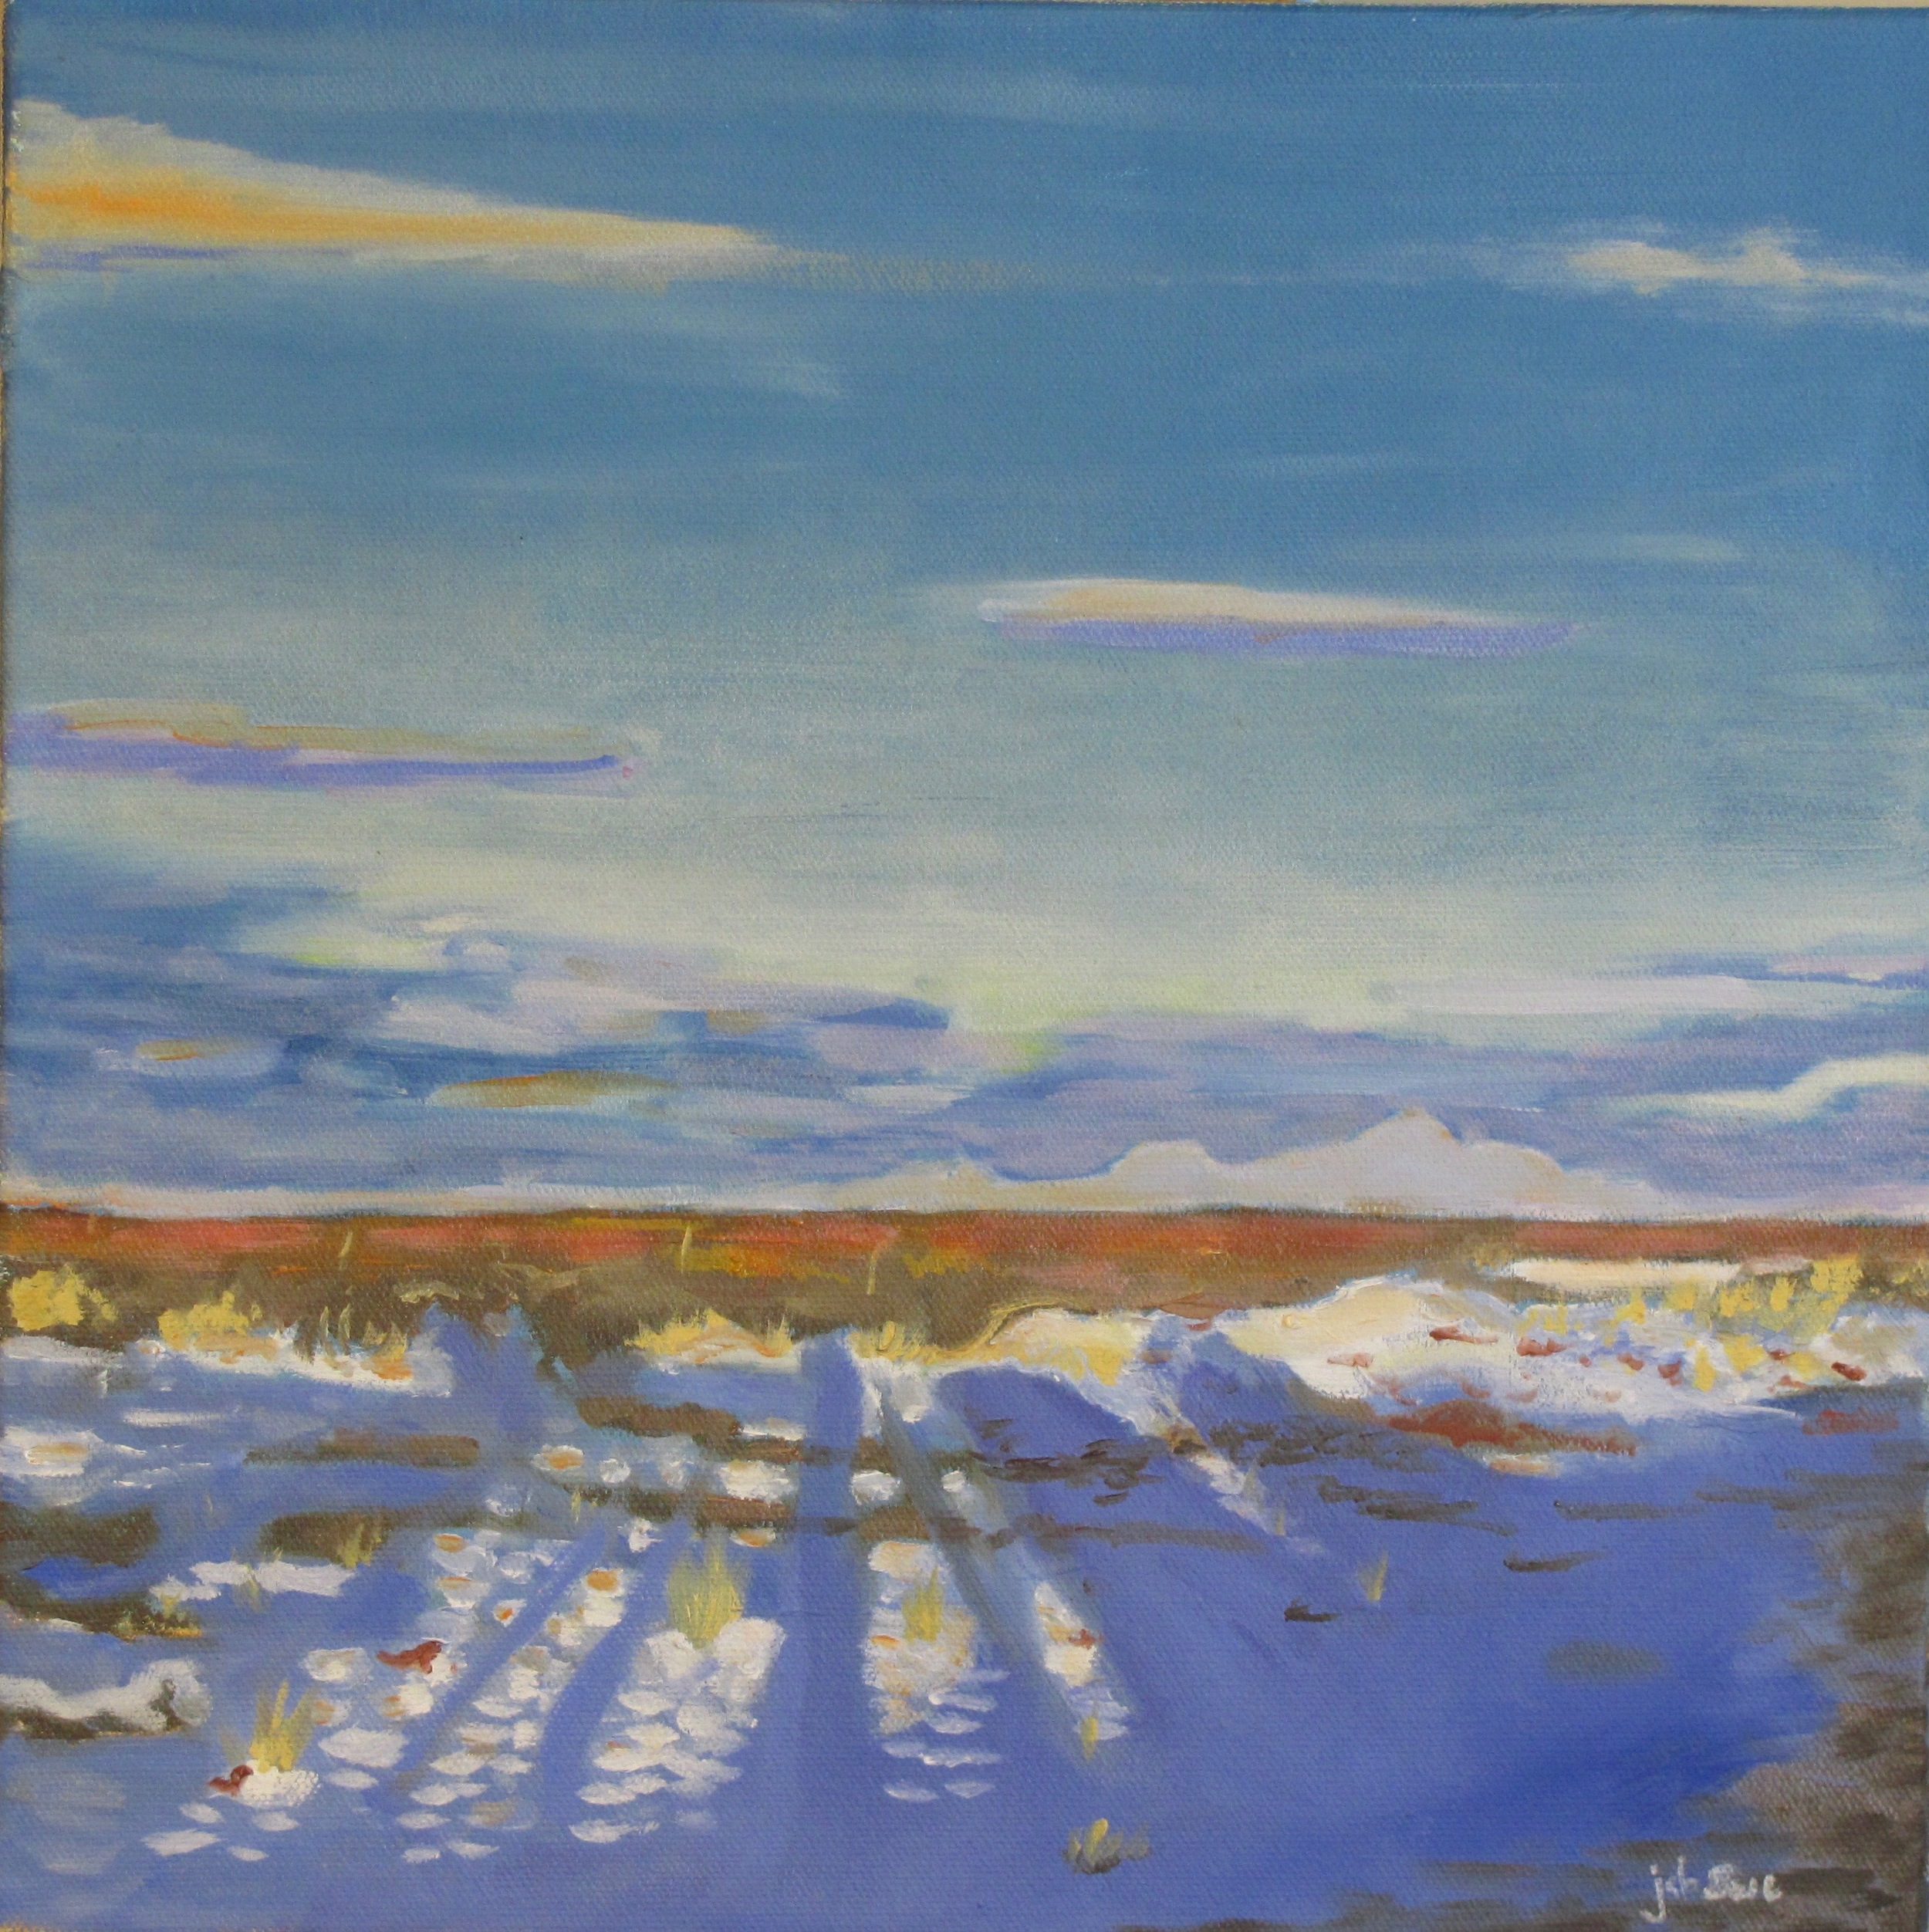 "Snow on High Desert,  Oil on Canvas, 12"" x 12"", 2015"